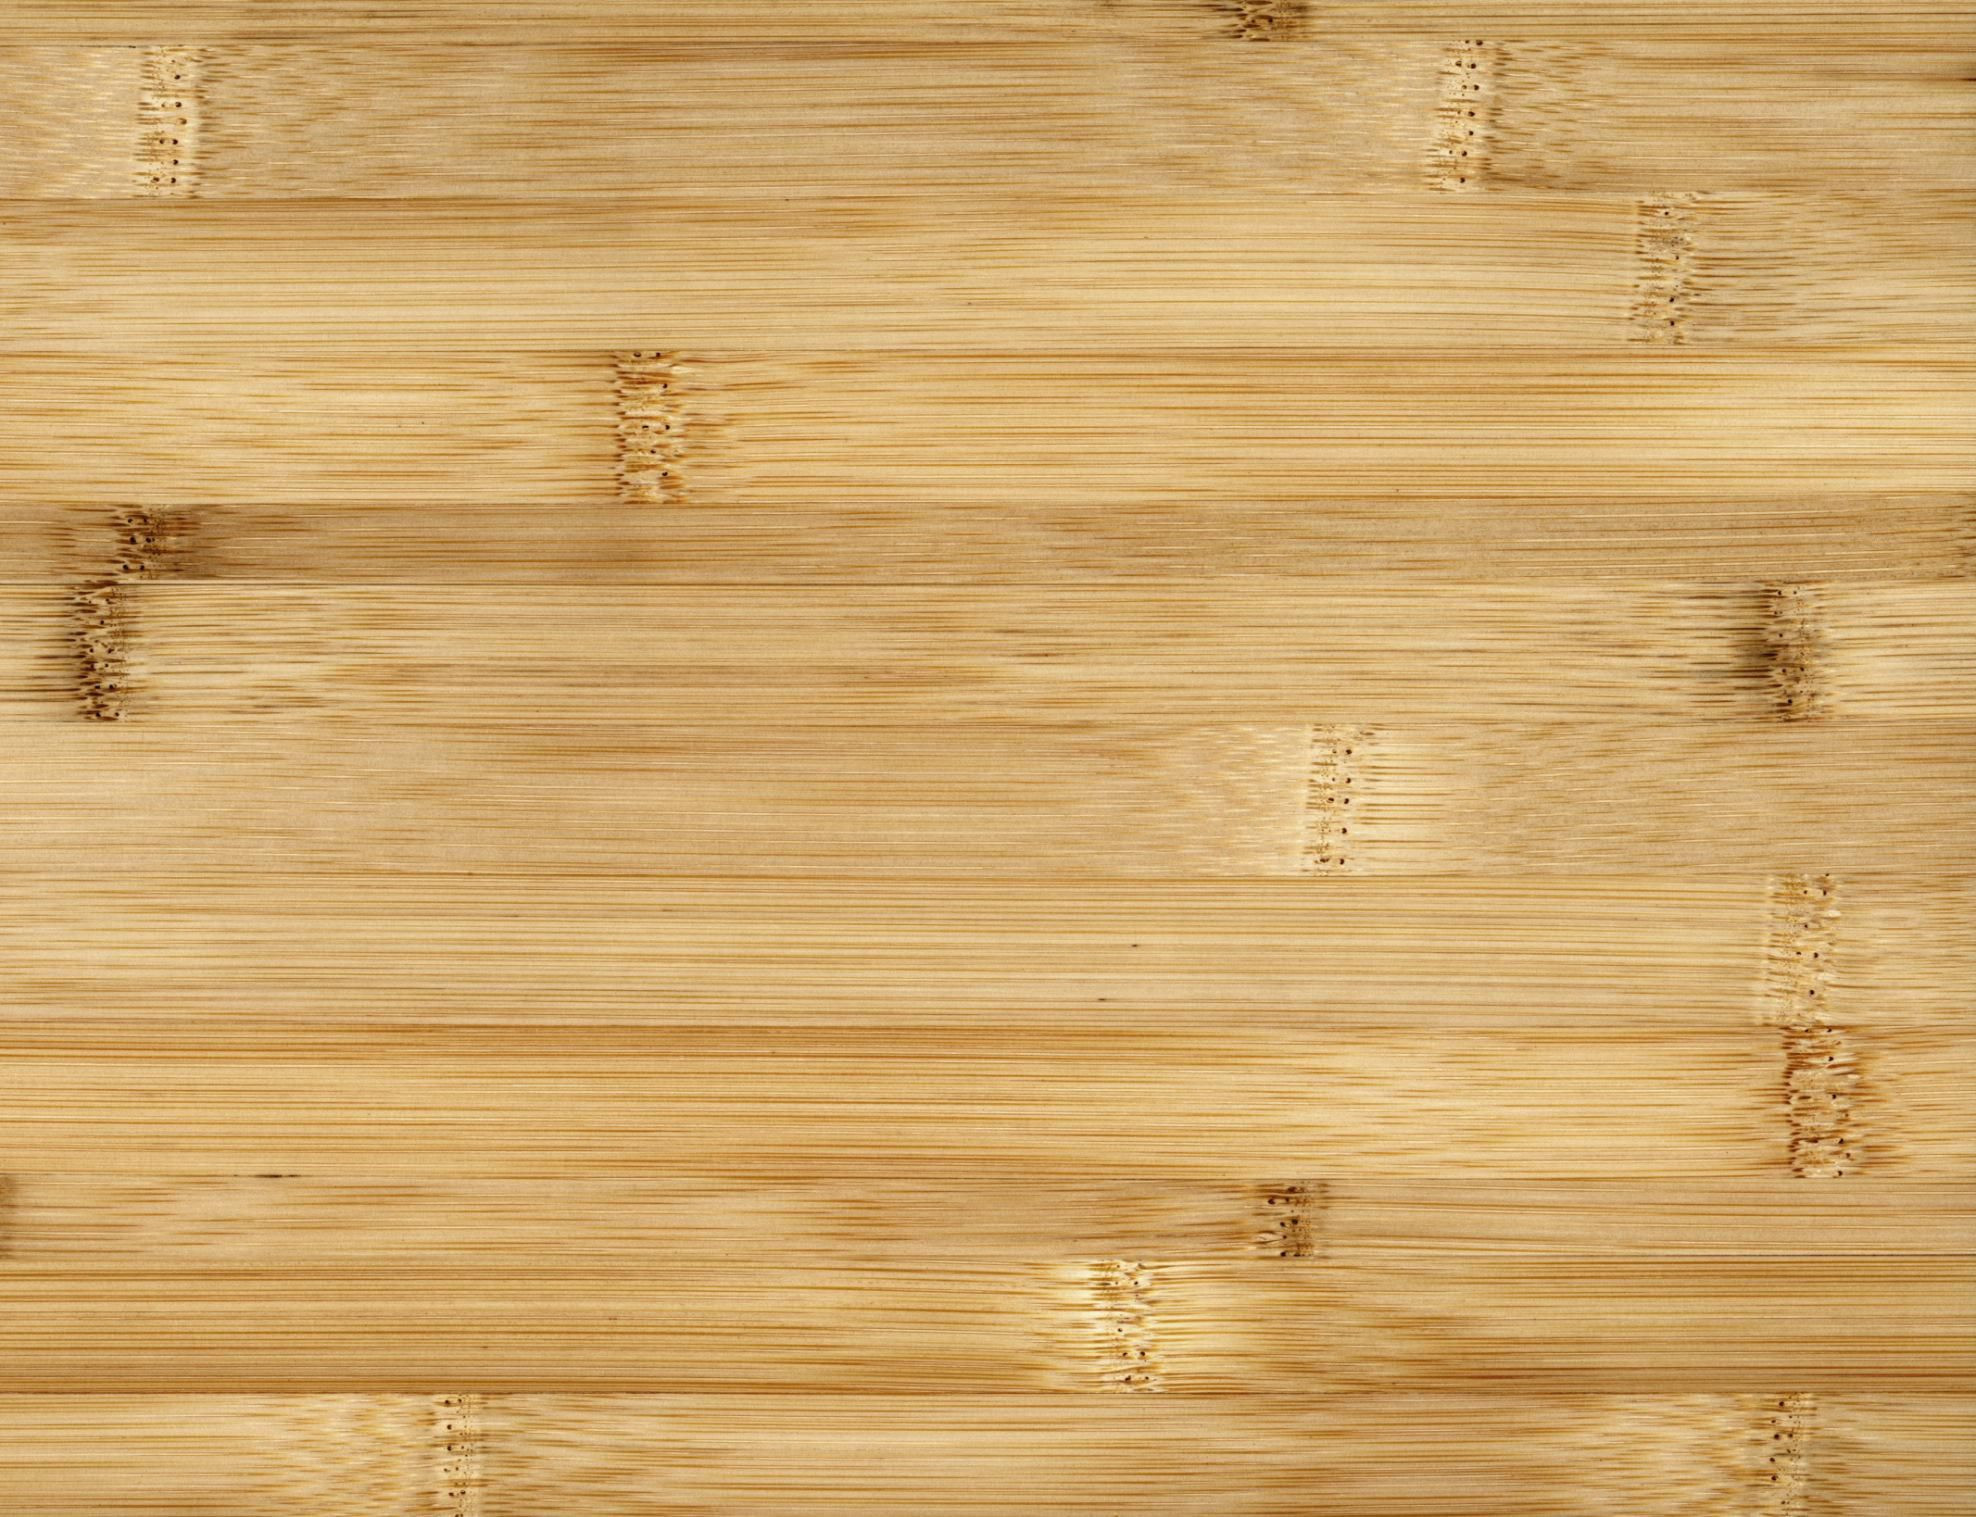 bruce hardwood and laminate floor cleaning system of how to clean bamboo flooring pertaining to 200266305 001 56a2fd815f9b58b7d0d000cd